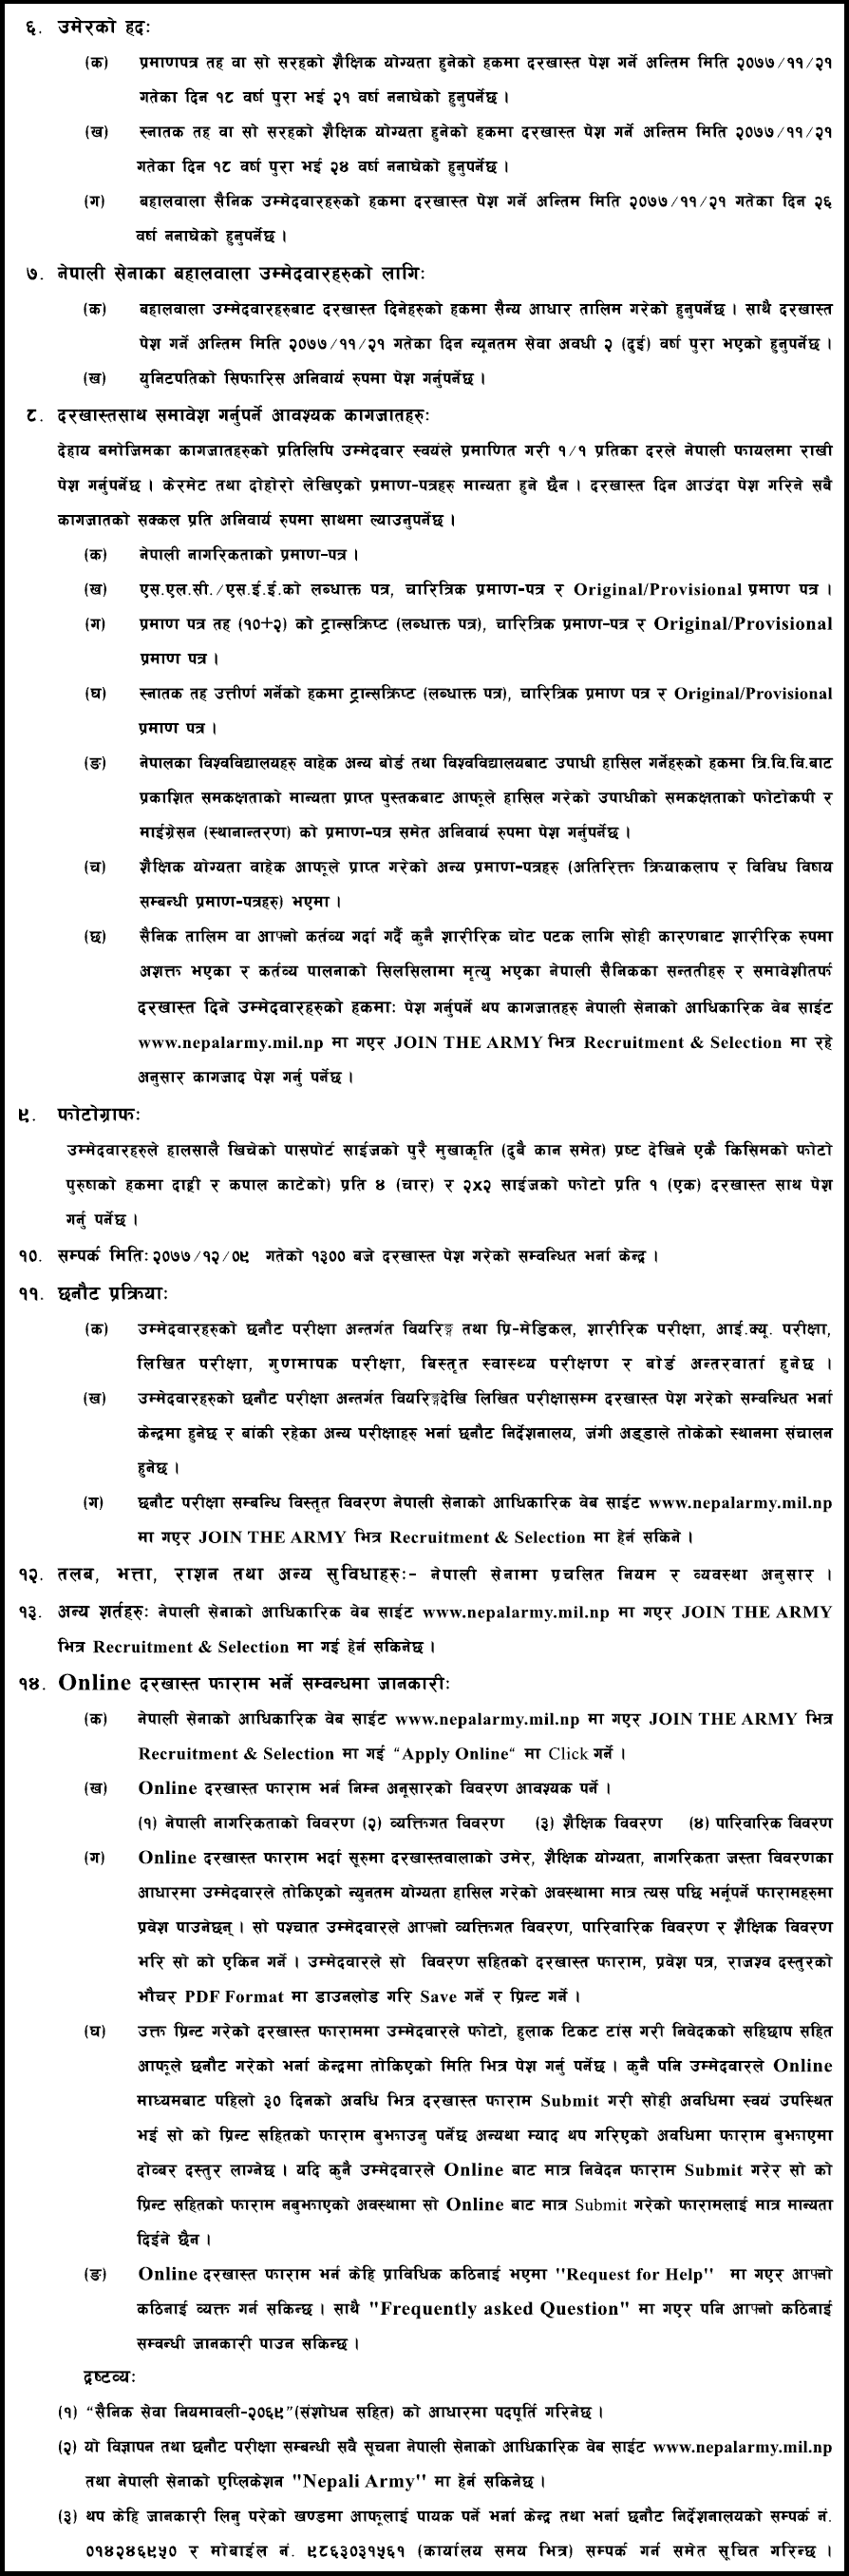 Nepal Army Vacancies for Officer Cadet - 2077